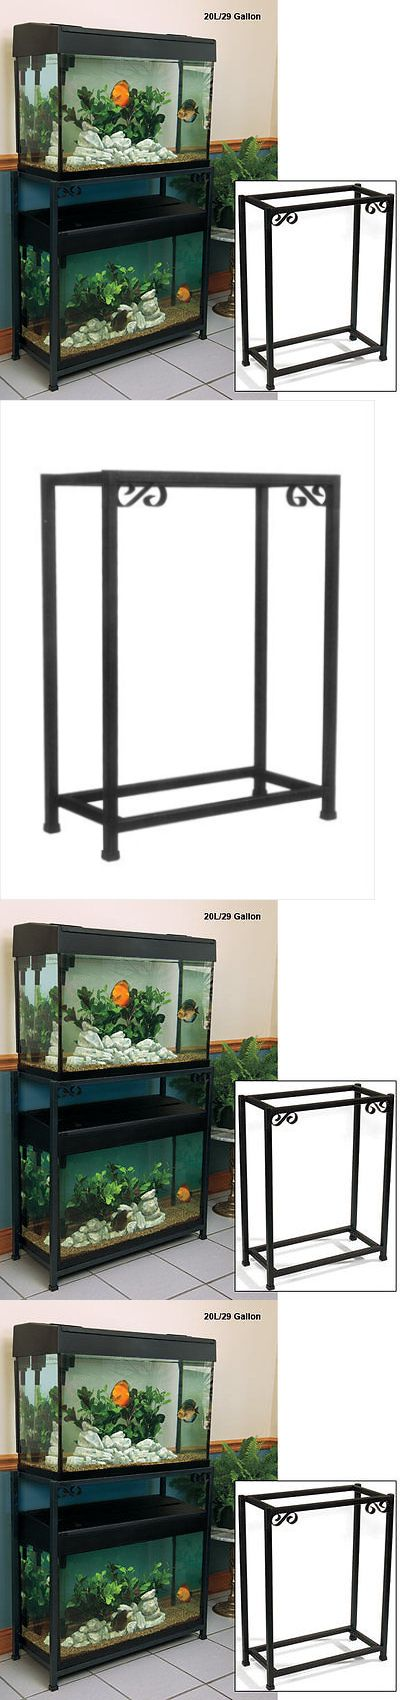 Aquariums and Tanks 20755: Titaneze Aquarium Base Stand 20 Gallon Fish Tank Home Decor Holder BUY IT NOW ONLY: $66.61